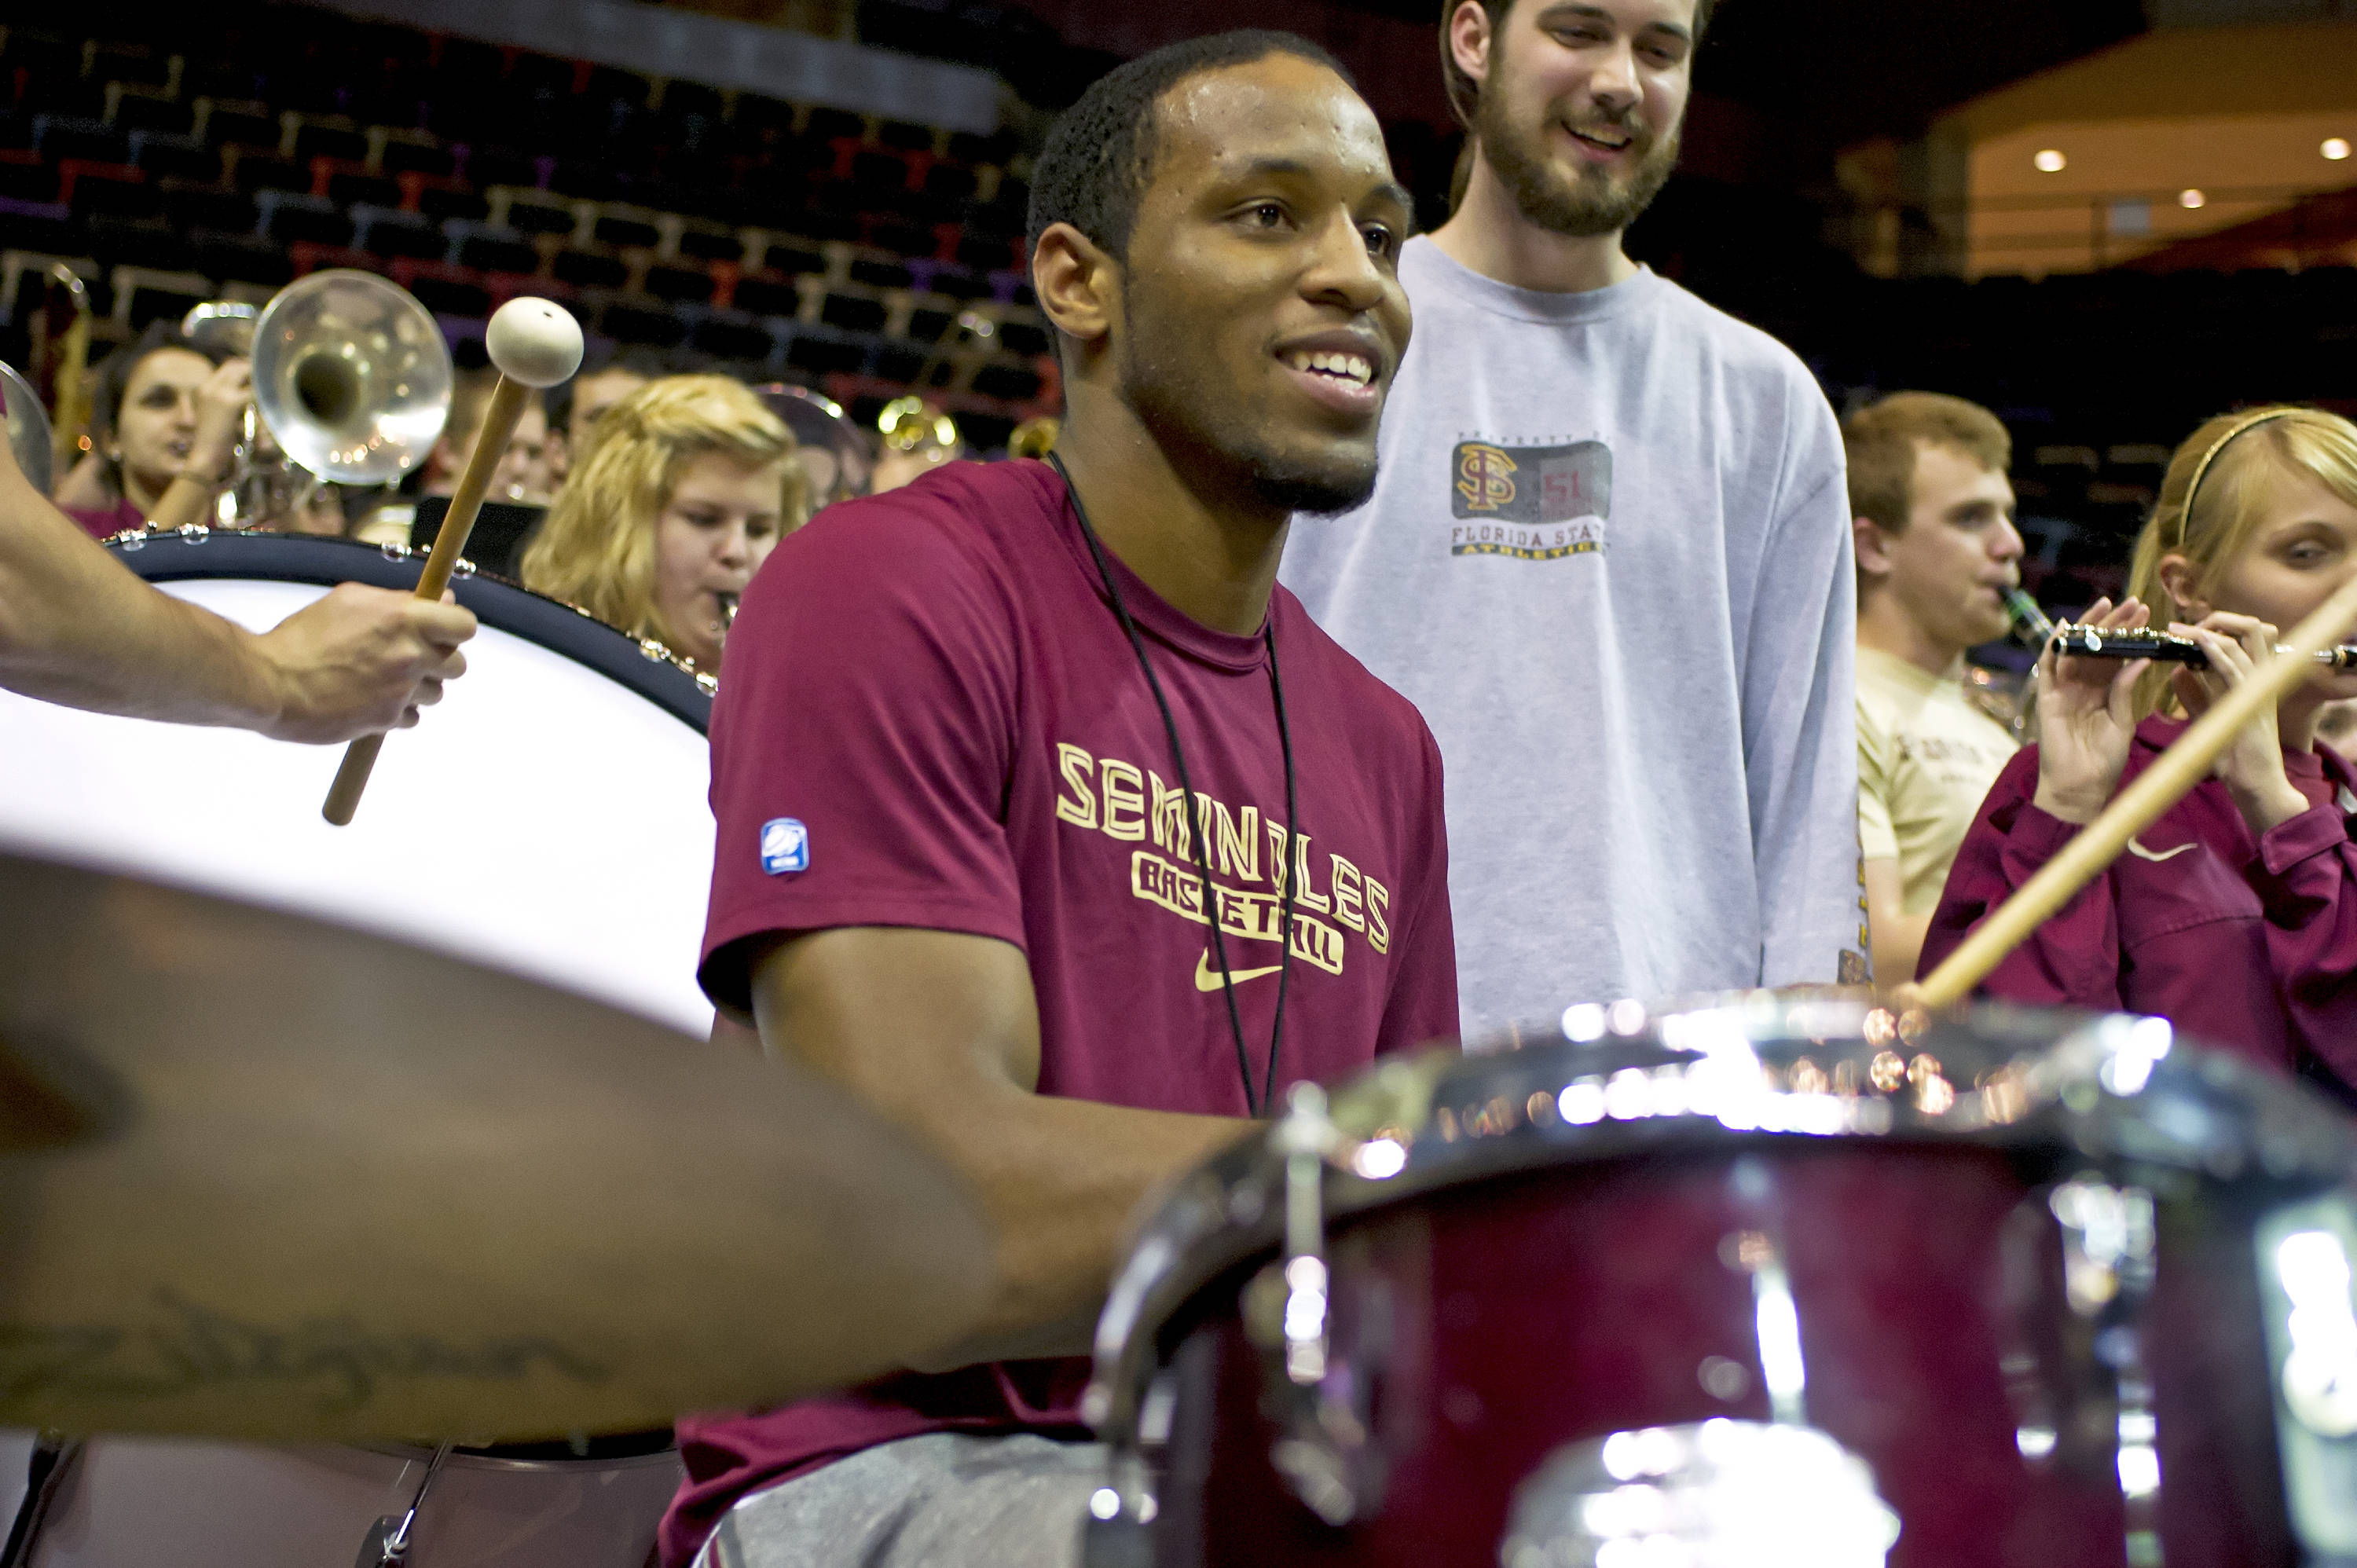 FSU Men's basketball player Michael Snaer serenades the Women's Basketball Team on the drums at the end of the game.